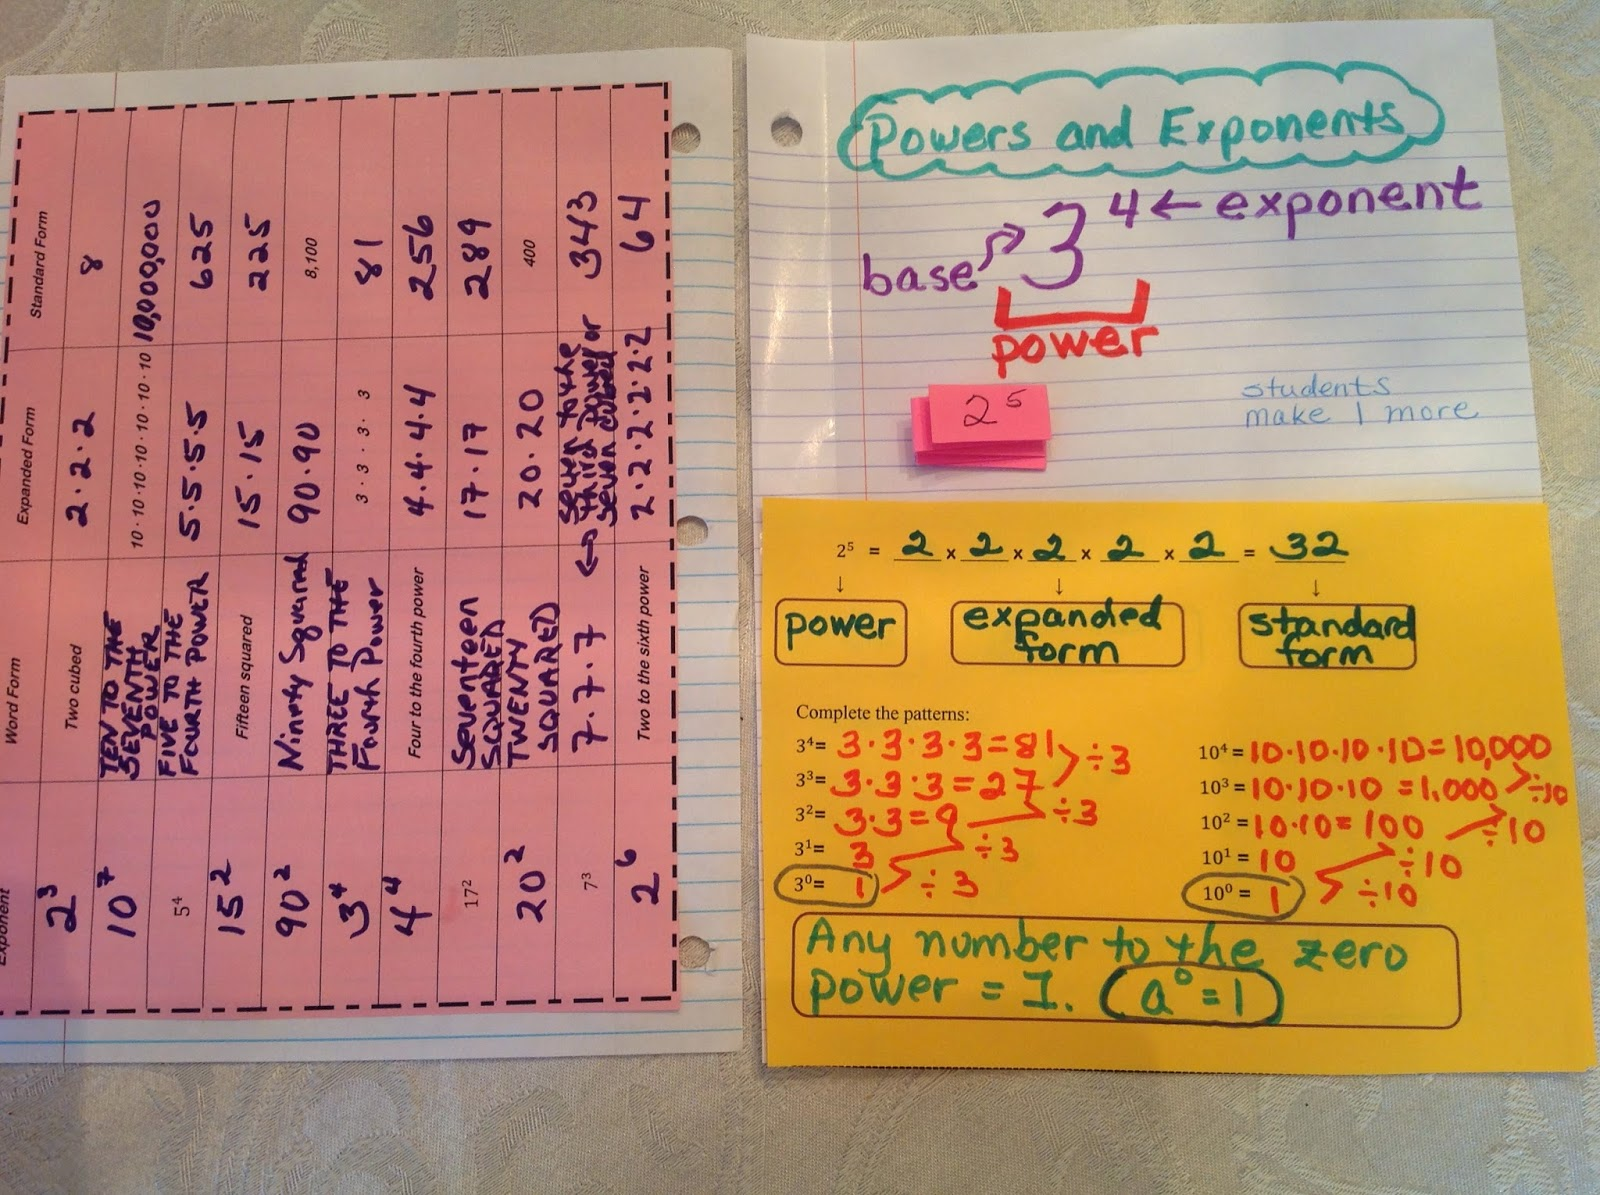 Equation freak exponents interactive notebook page the top section of the right page is from math love i love the exponent and how you can pull it out to see the expanded form falaconquin